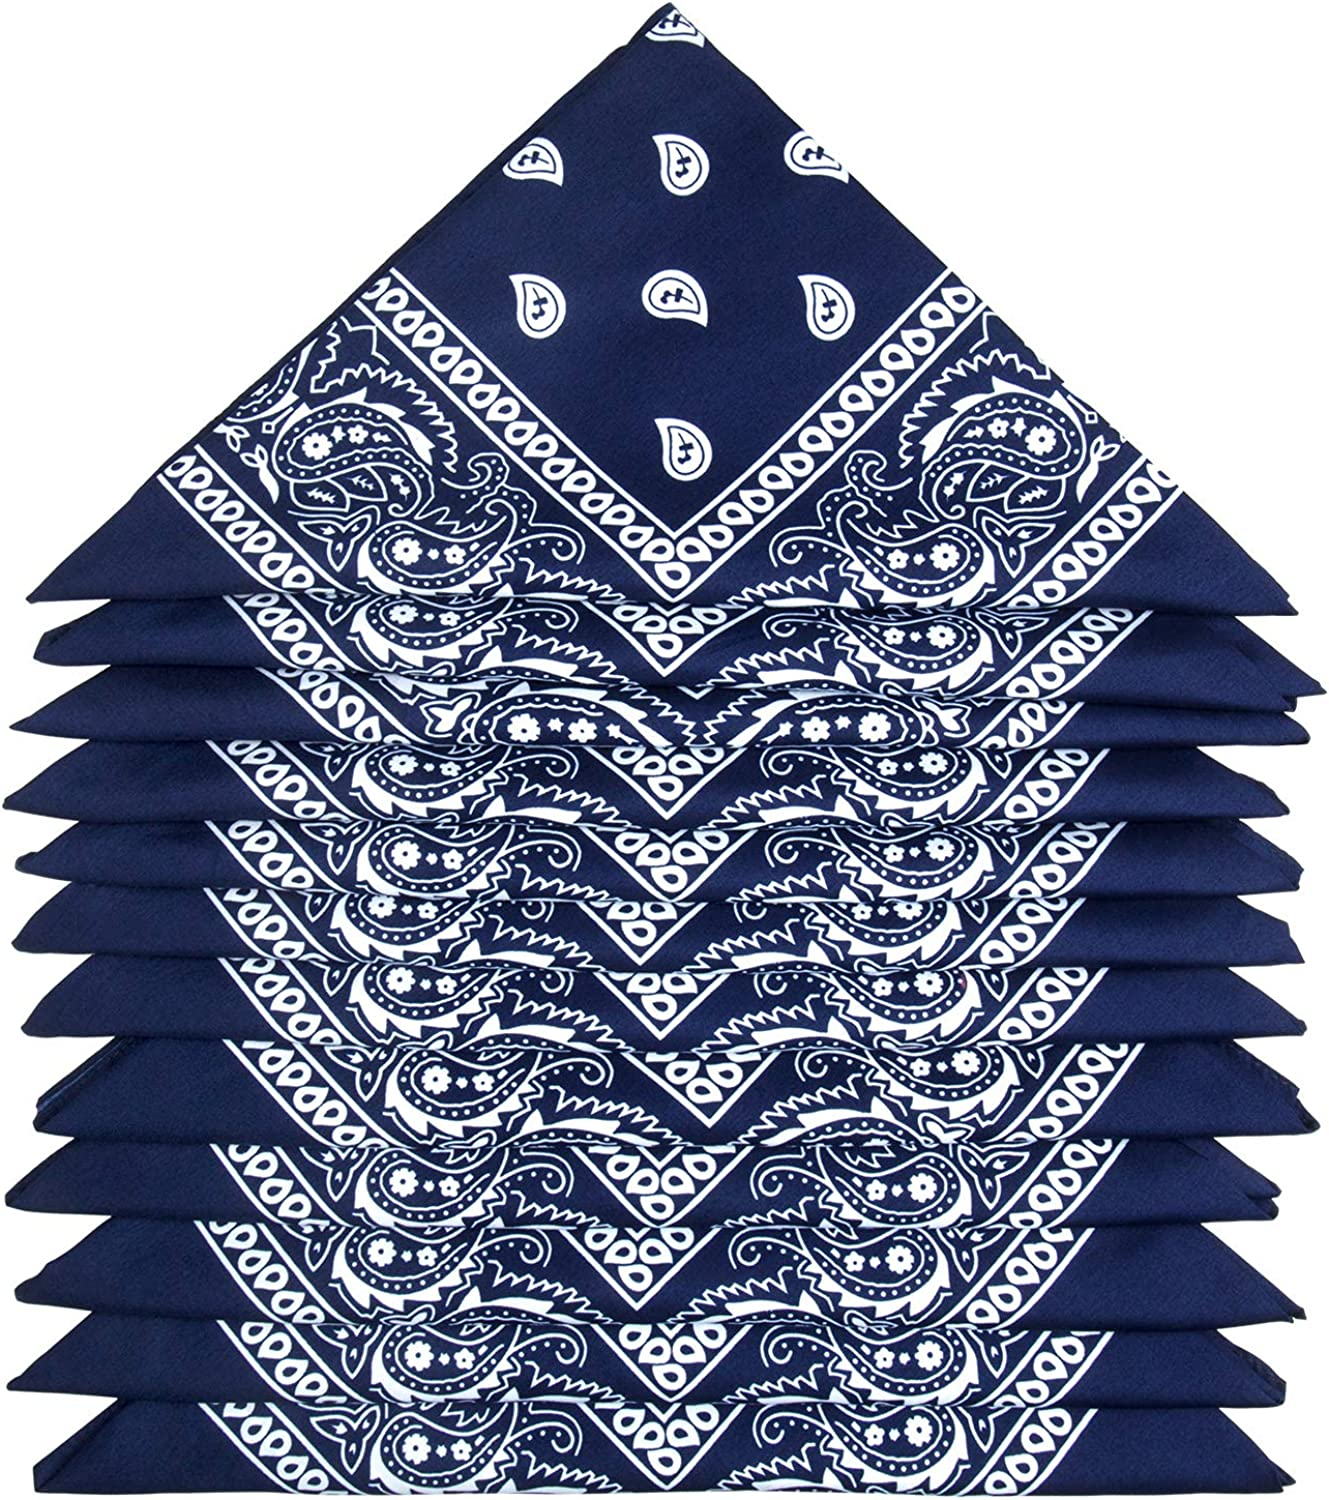 Novelty Cowboy Scarf for Fashion Coordinate 12 Packs Paisley Neckerchiefs ZWOOS Bandanas for Men and Women